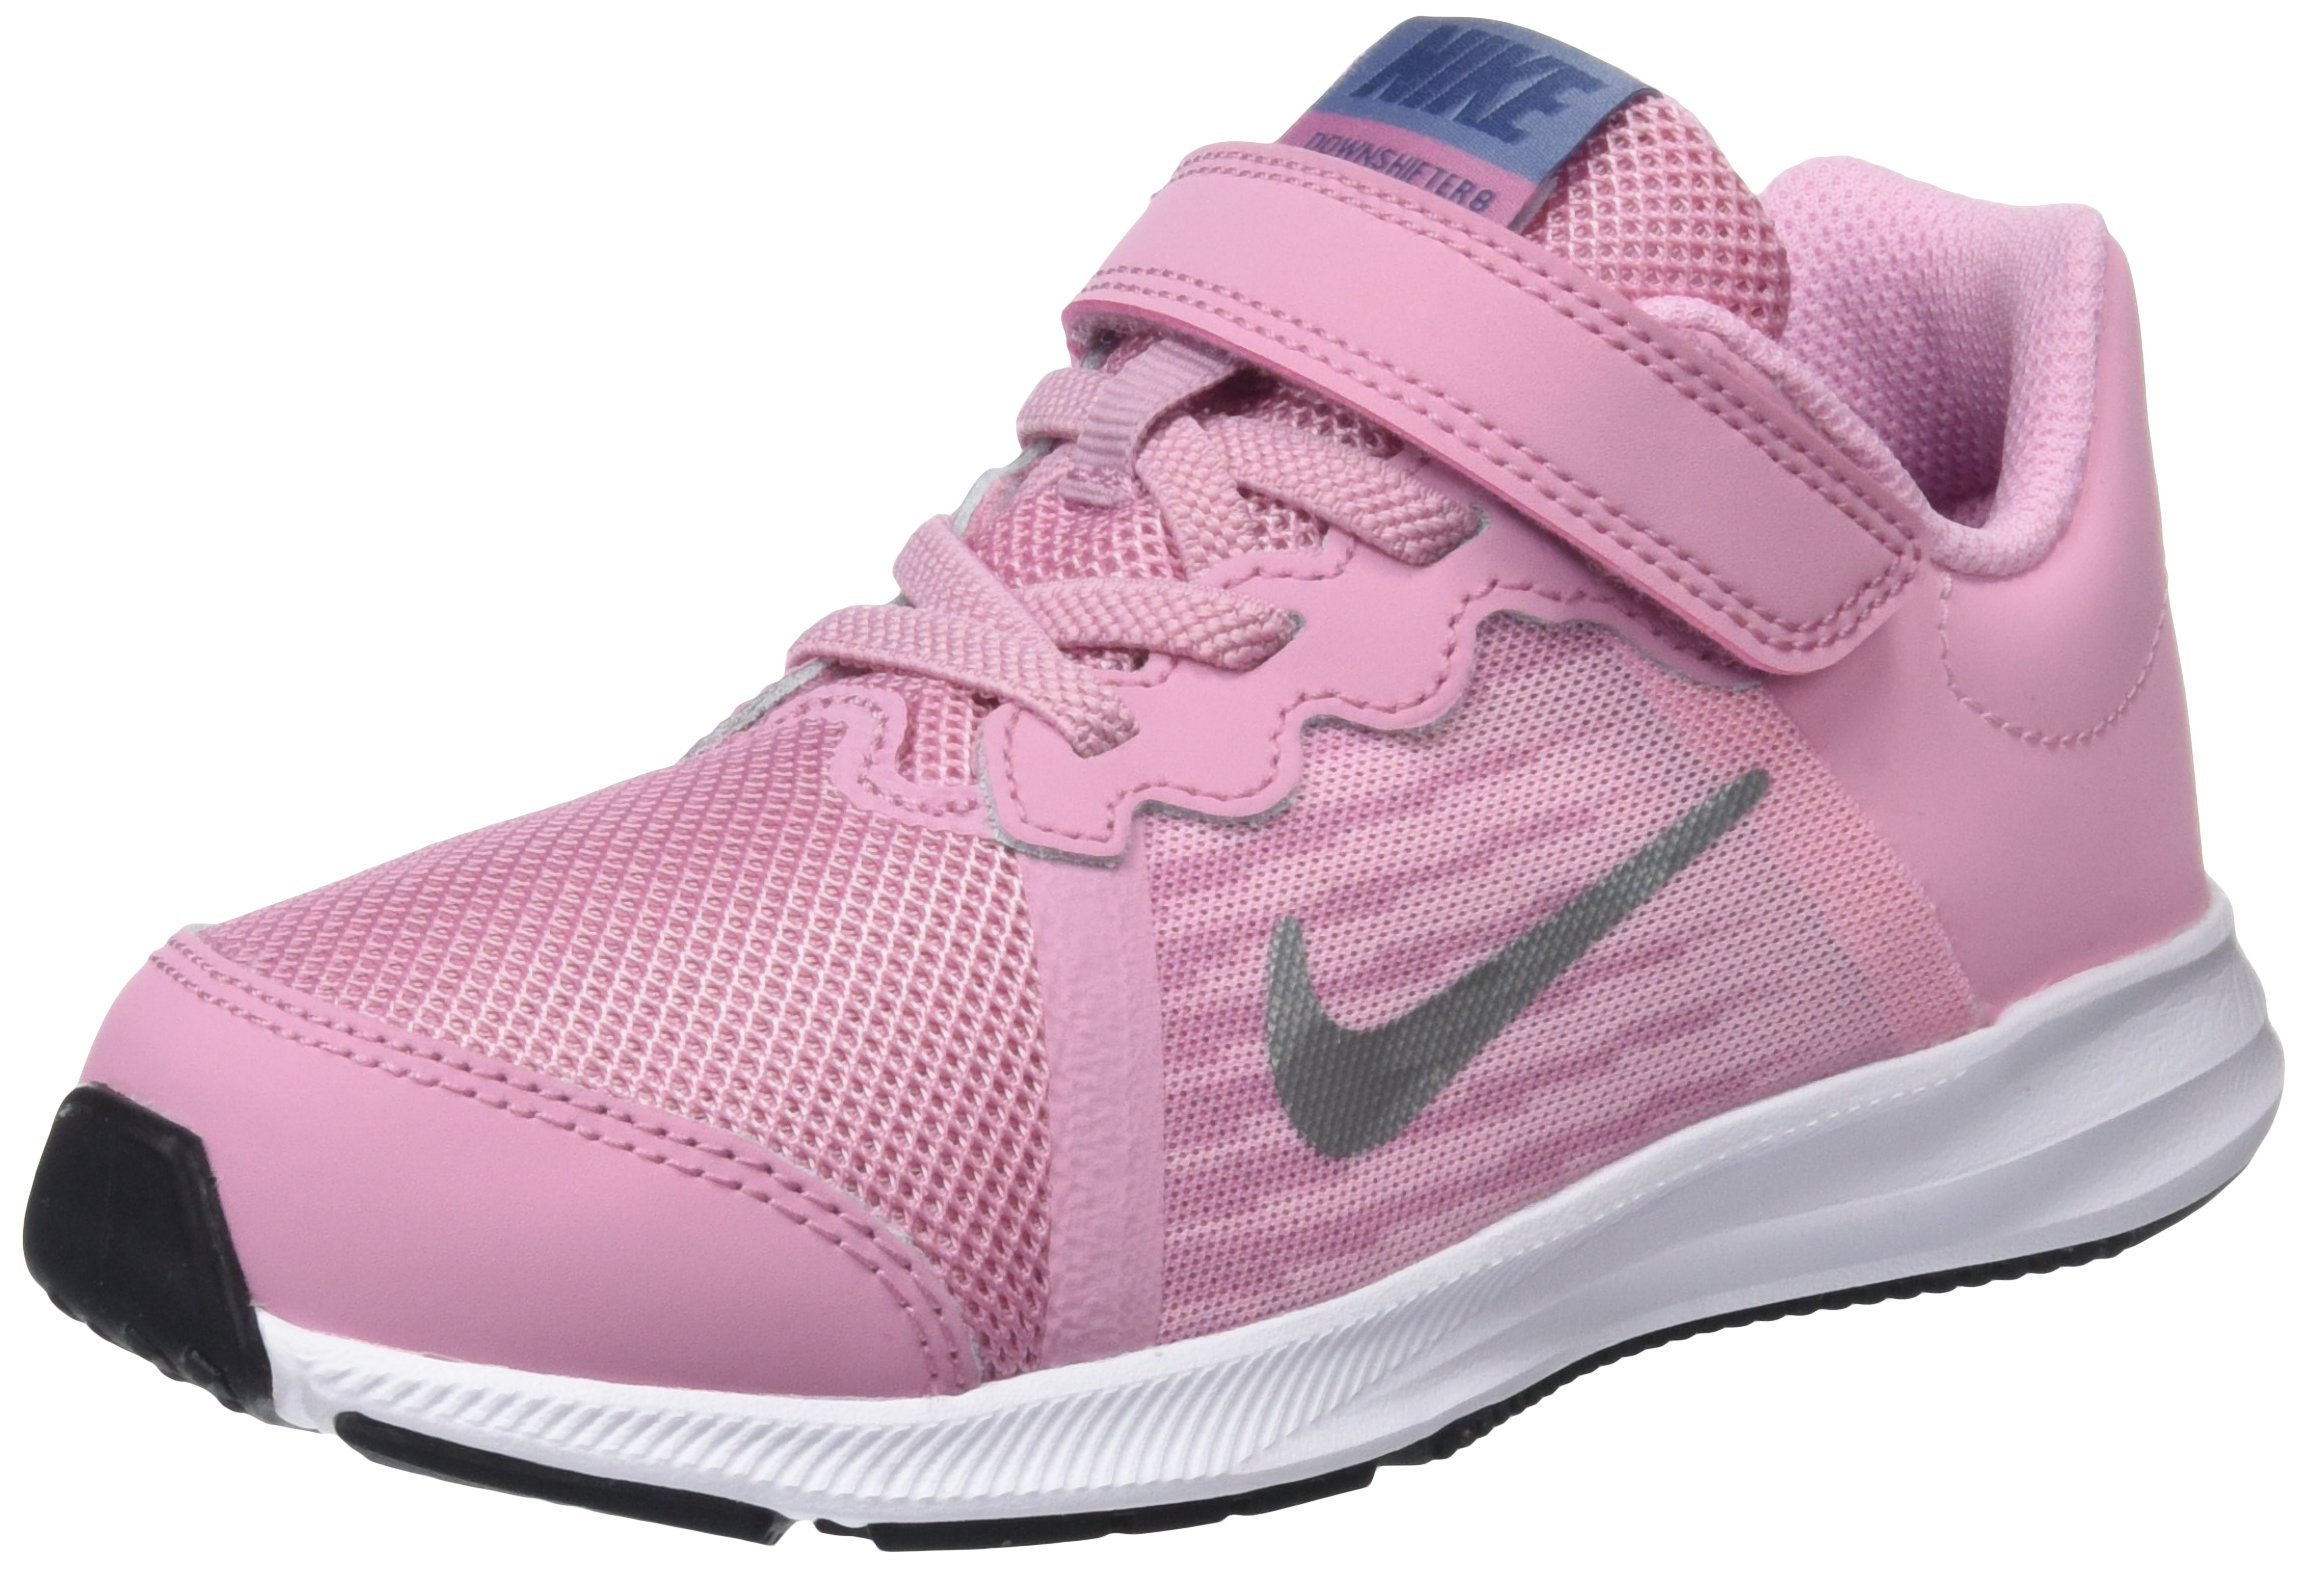 d0df8a3bed2 Galleon - NIKE Toddler Girls Downshifter Sneaker (3